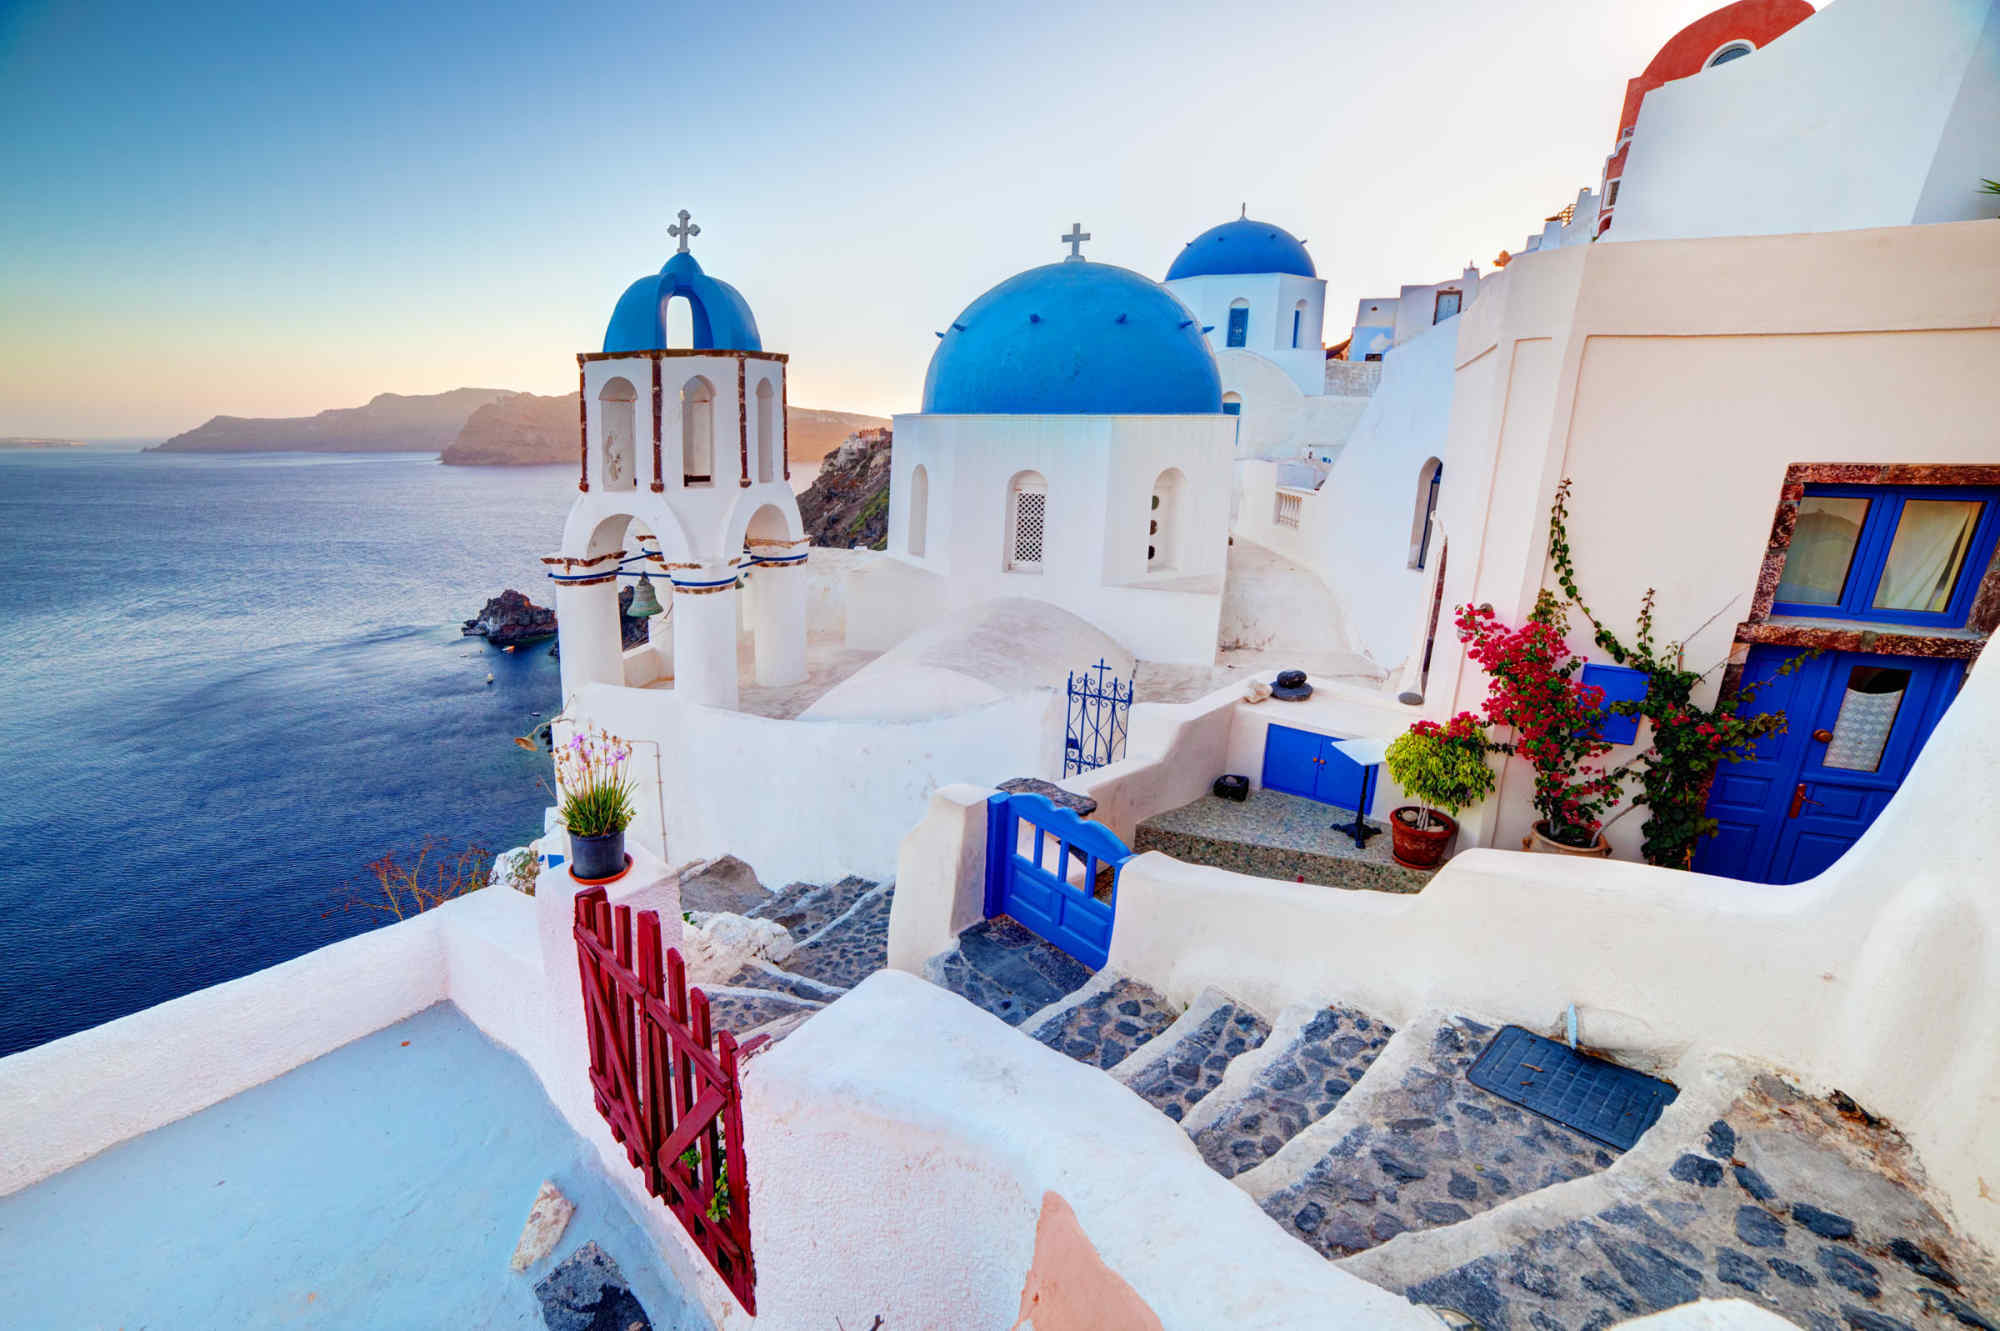 Family-owned Funjet Vacations has been helping people take well-earned trips and quick getaways for more than 30 years. The company specializes in affordable trips to top ski destinations and sunny locales, but Funjet coupons can get you anywhere from Paducah to Prague for less.